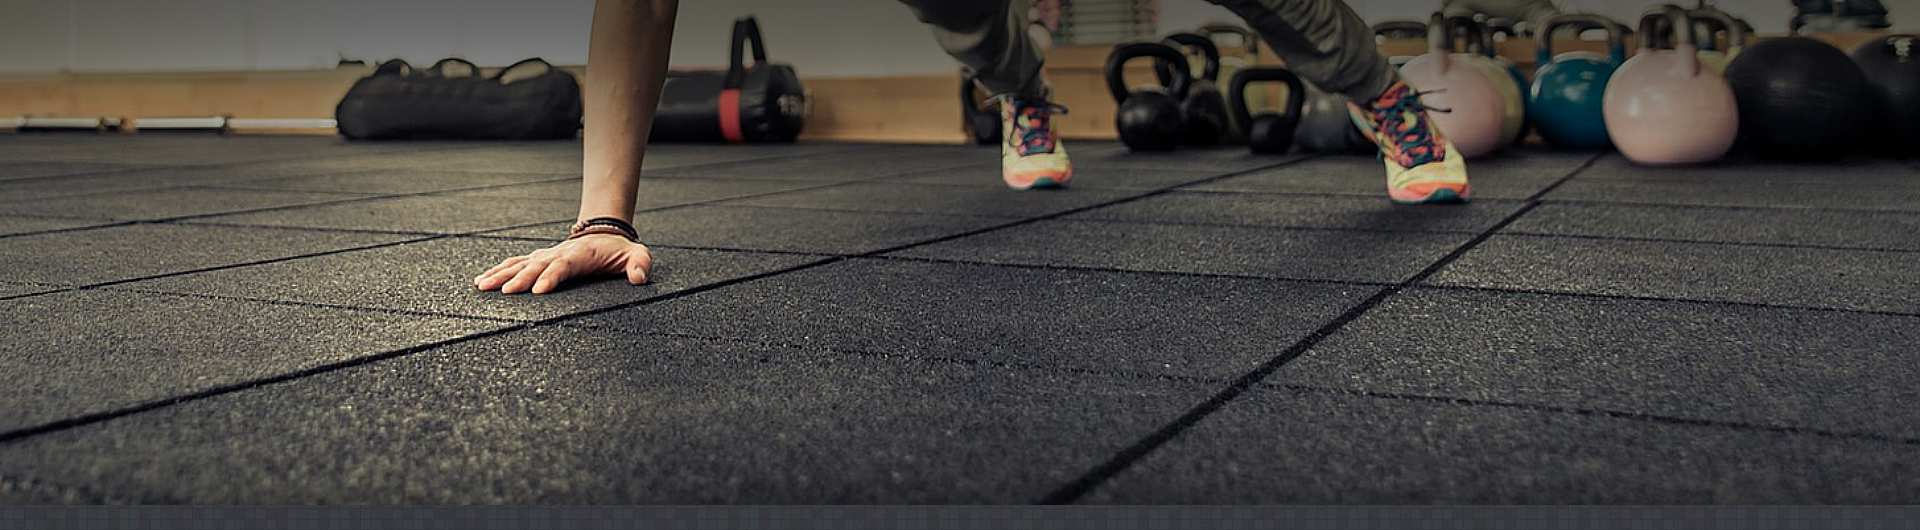 Rubber Flooring & Installer